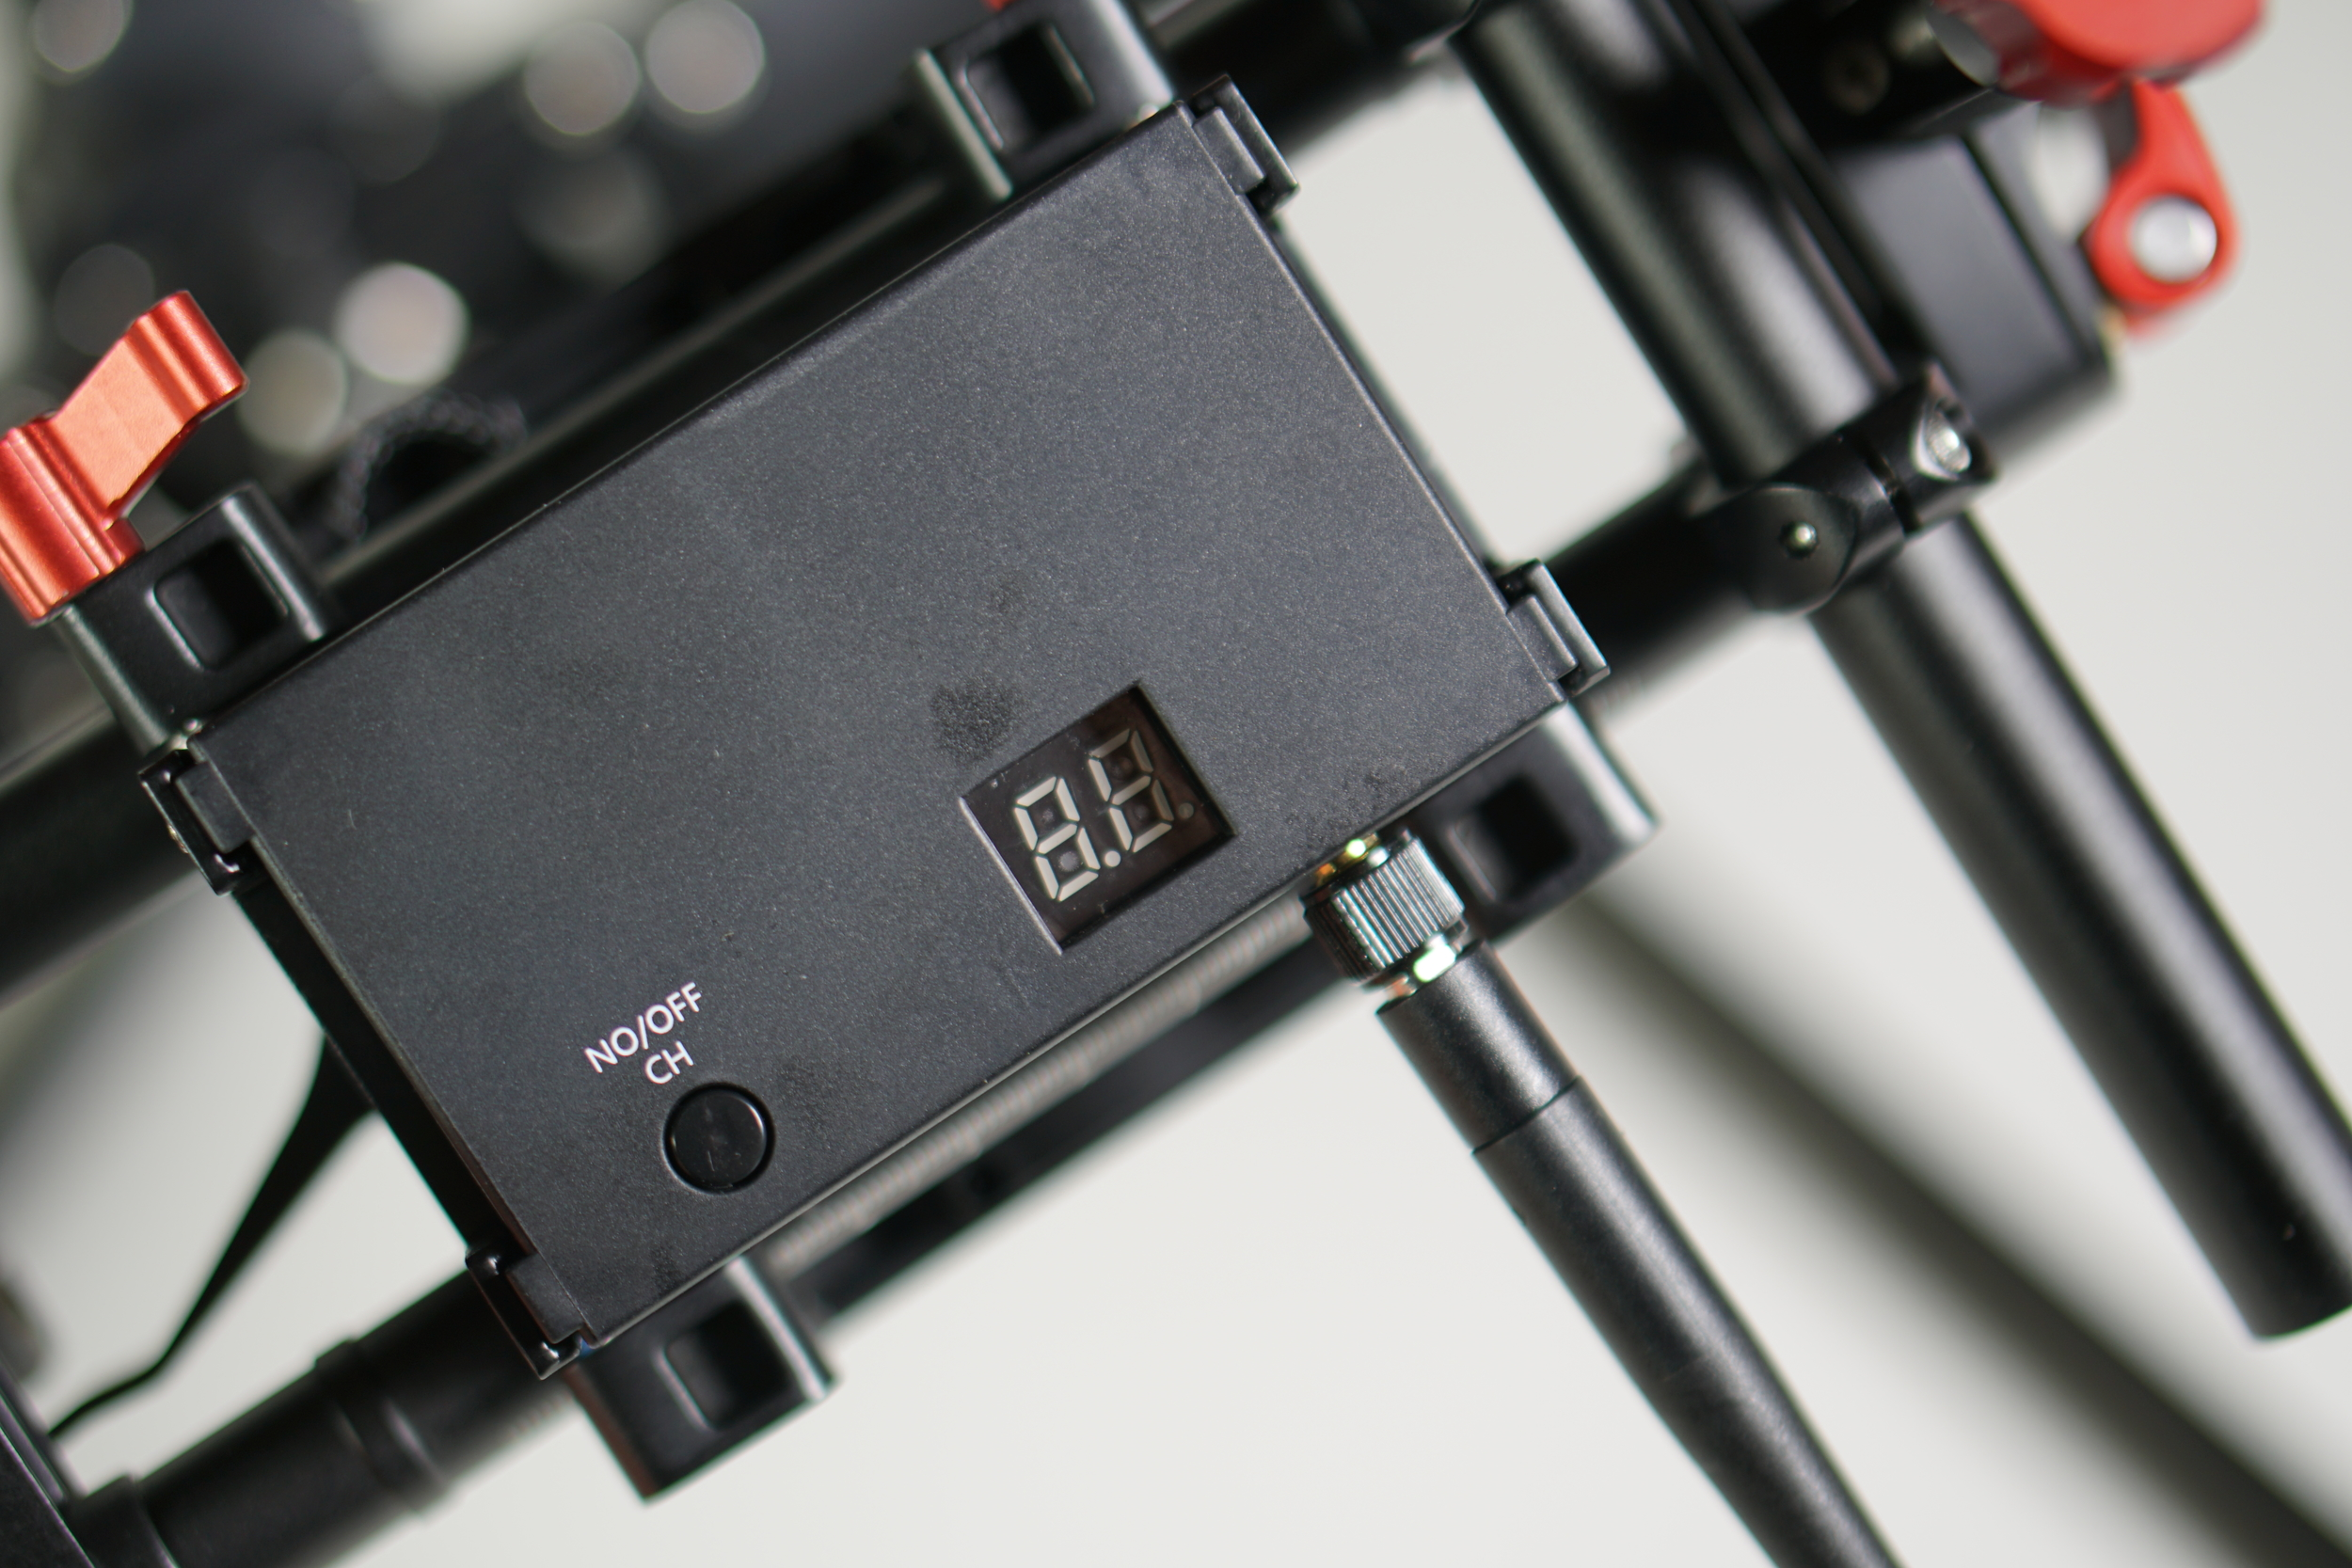 The 5.8Ghz transmitter is mounted to the bottom of the gimbal, underneath the QR plate.